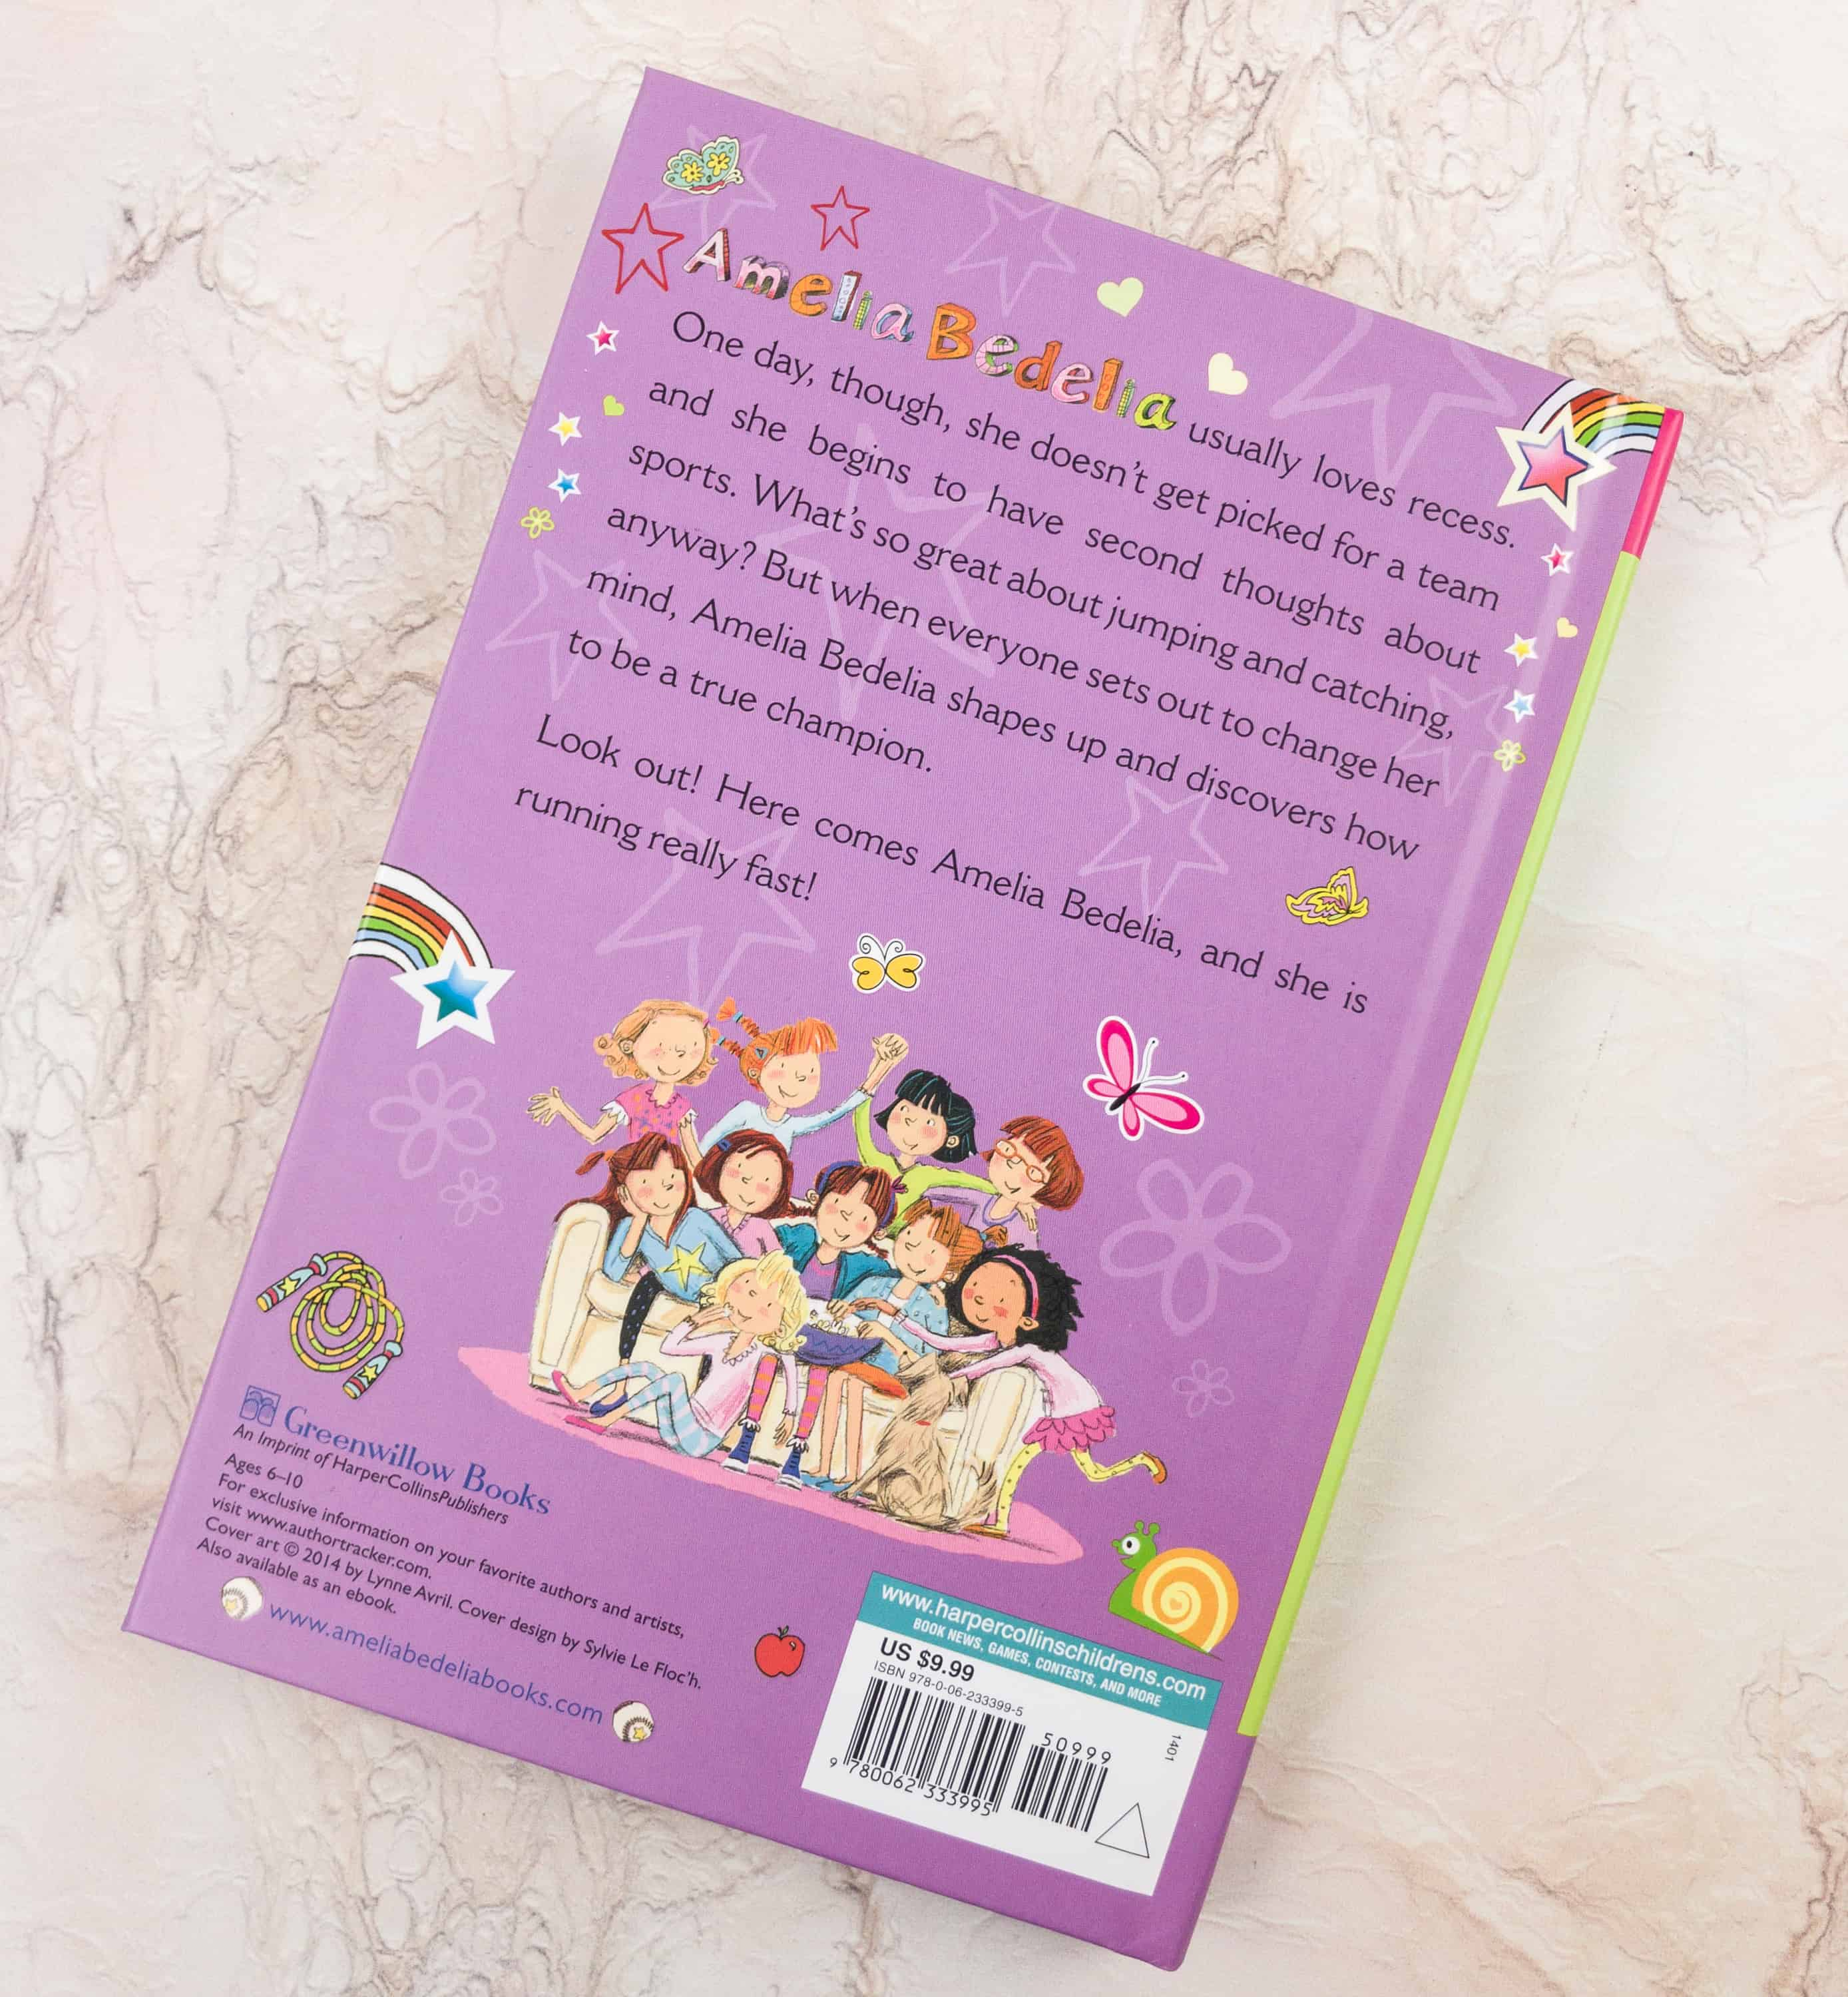 Kids bookcase club january 2018 subscription box review hello the cover illustrations are also cute we got my son hooked on the original version and hes been reading these we were thrilled to get book five fandeluxe Gallery